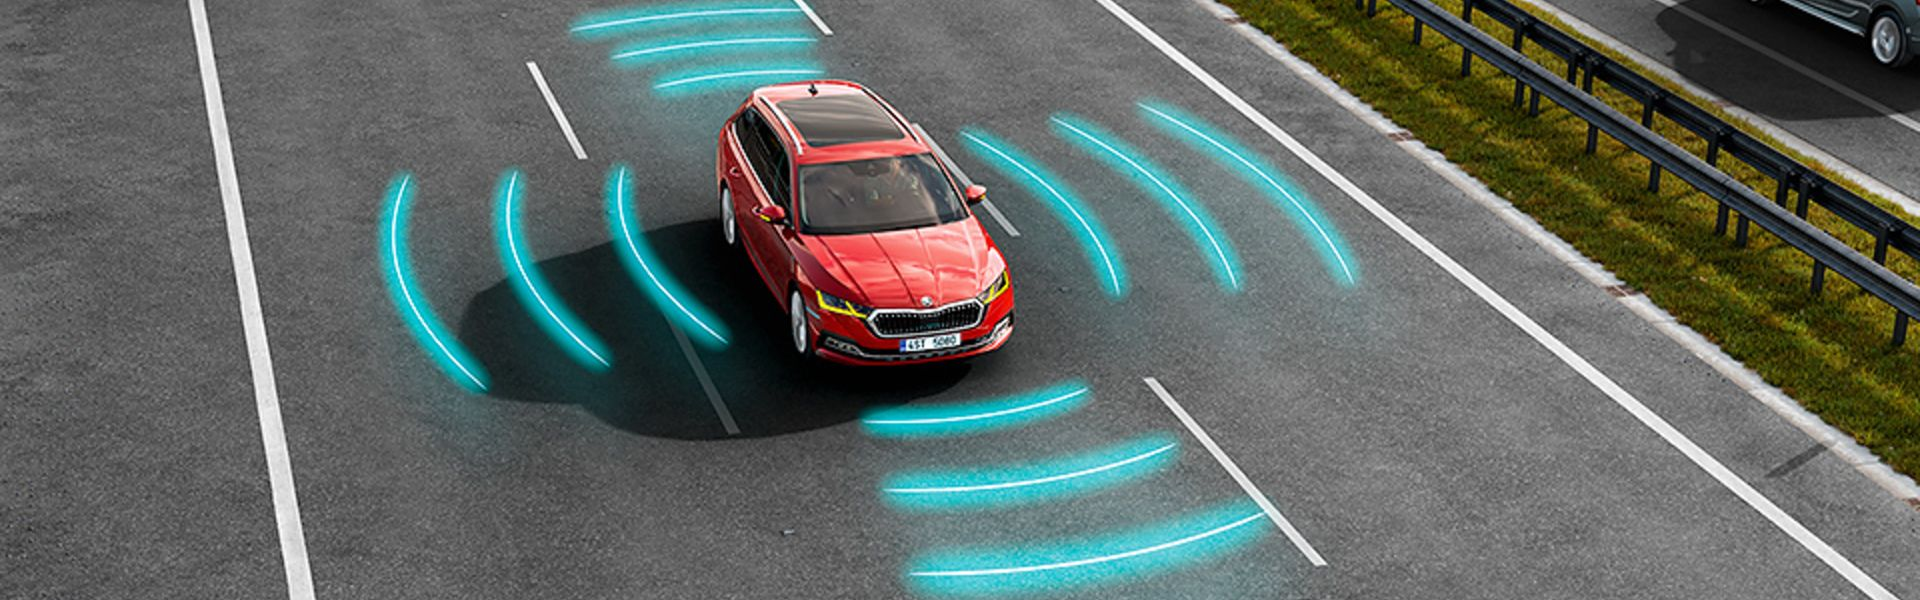 ŠKODA OCTAVIA Emergency Assist